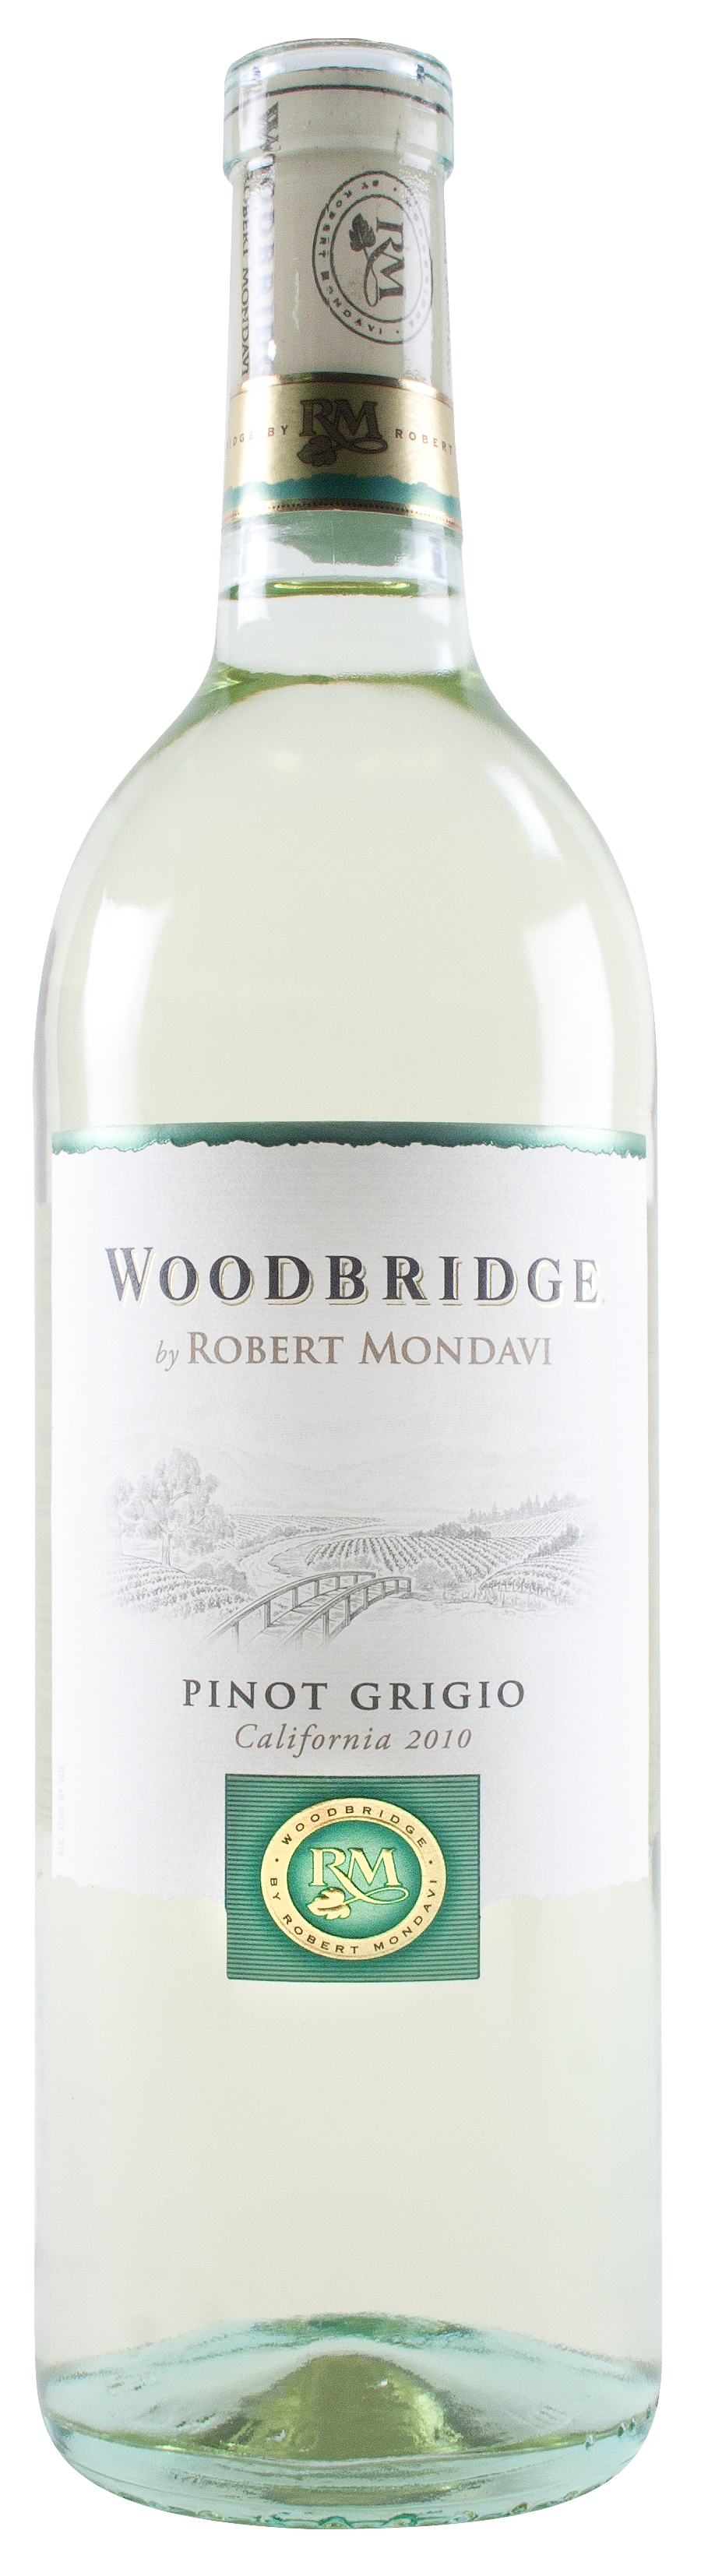 Woodbridge Pinot Grigio is the wine I like to drink at home.